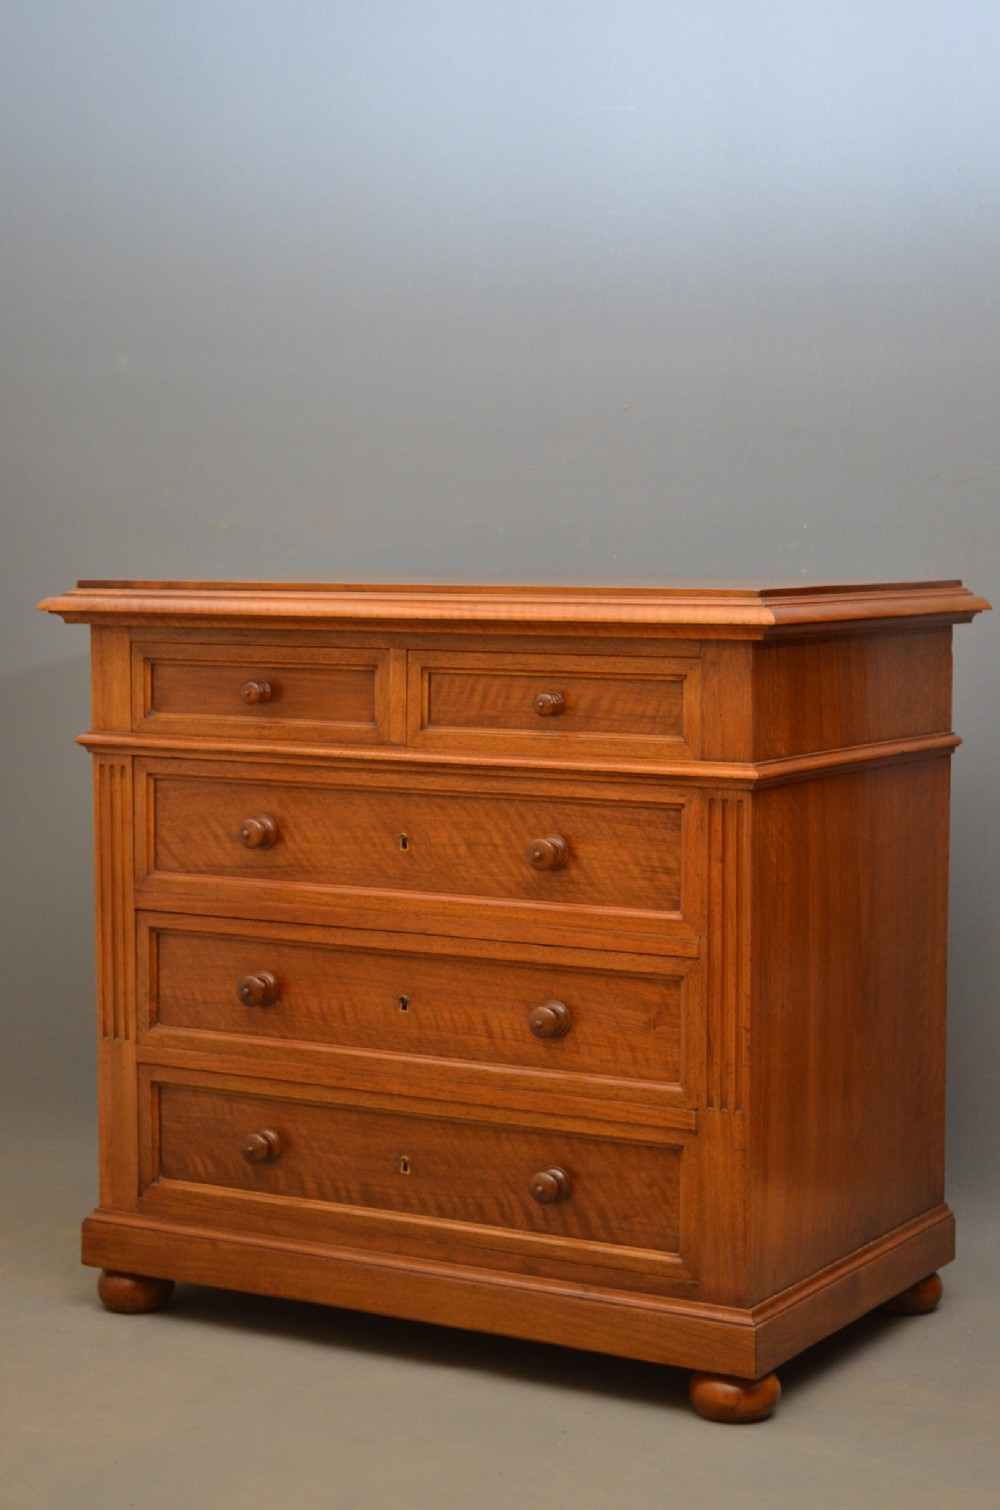 fine continental chest of drawers in walnut